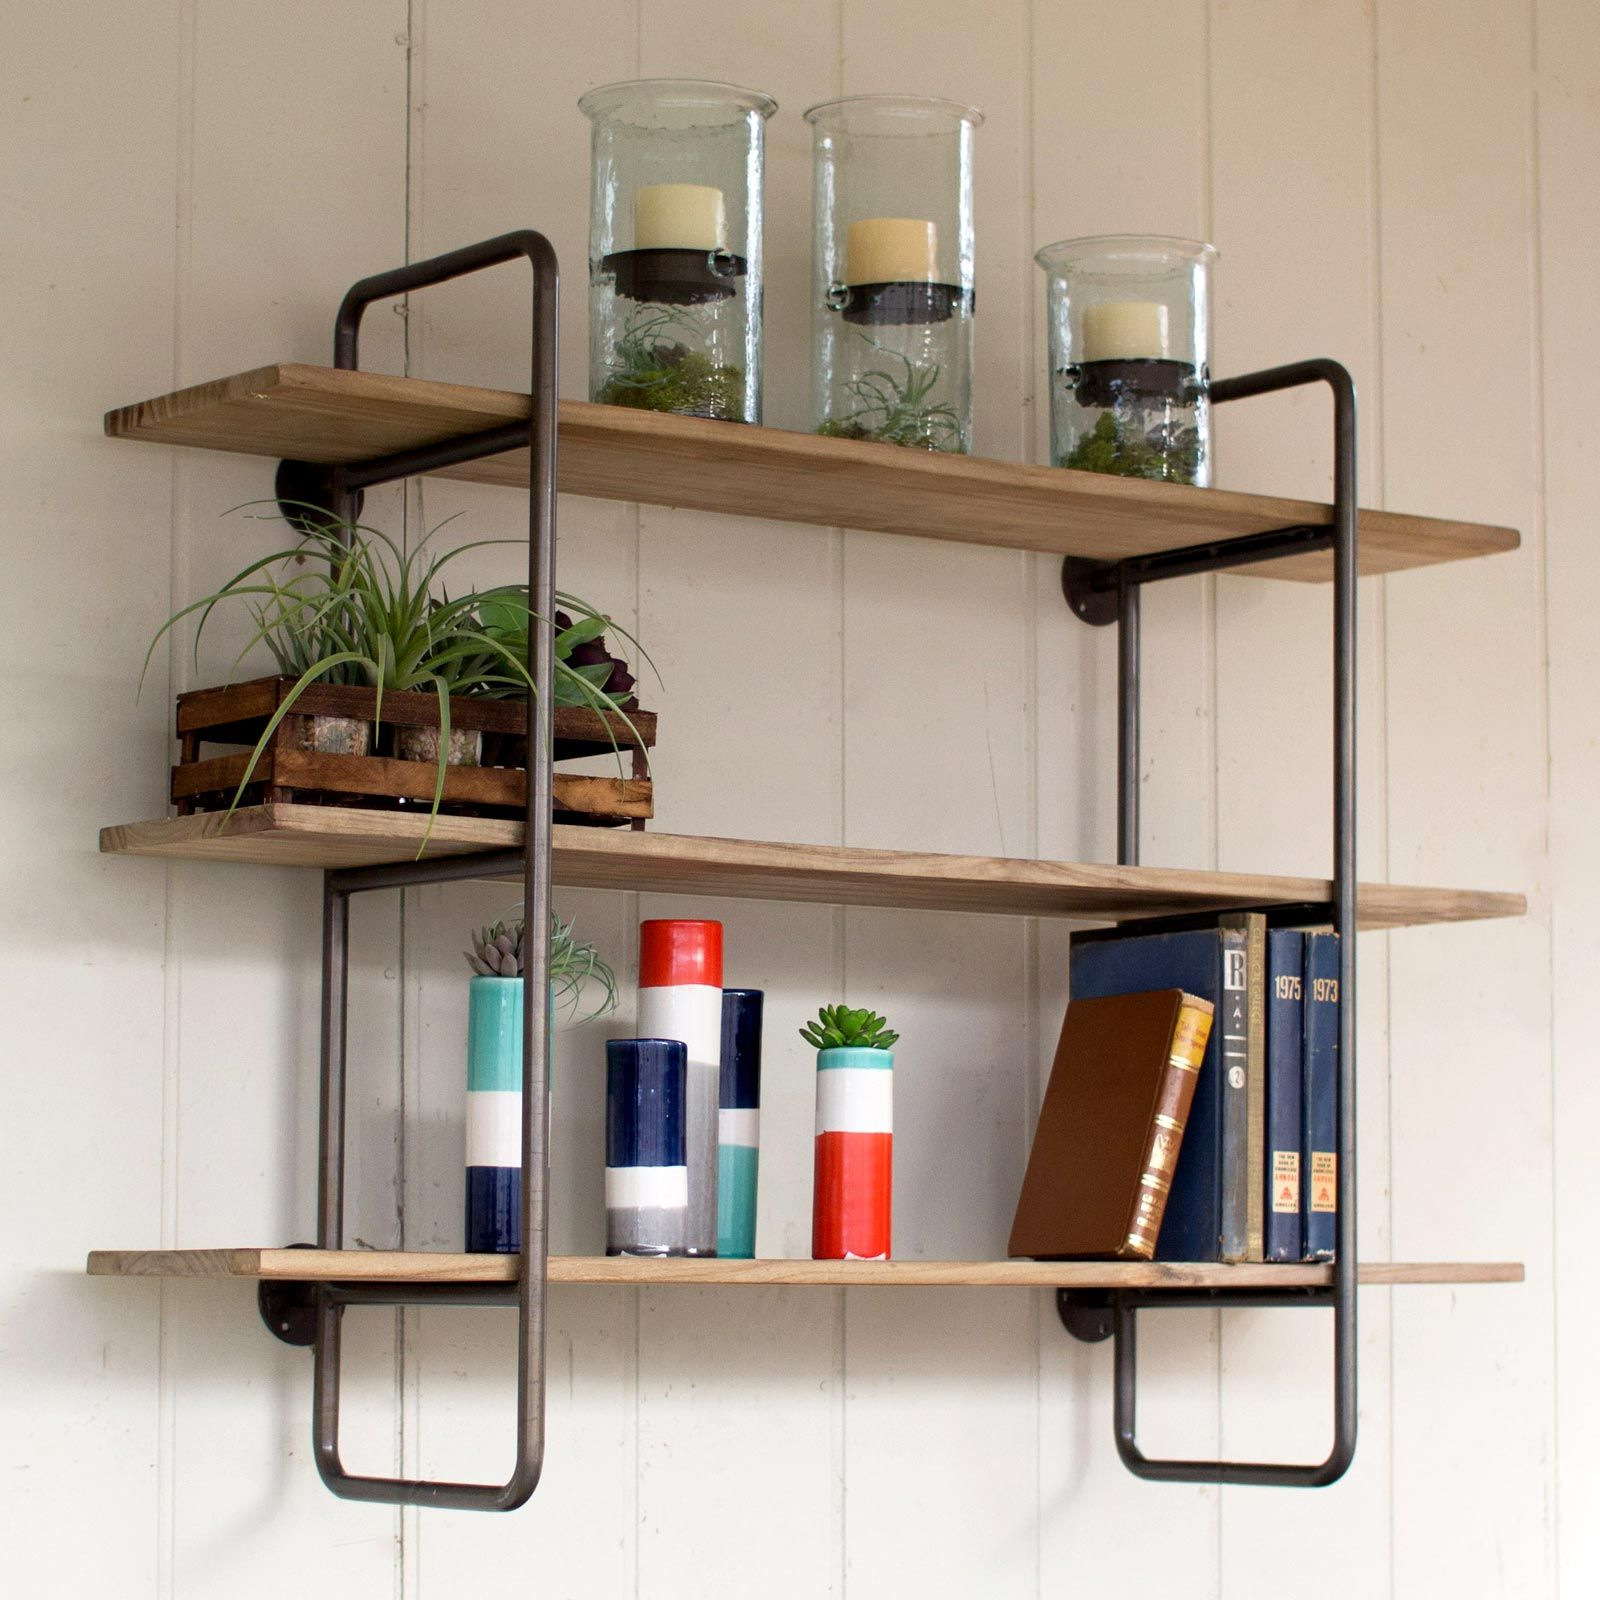 Industrial Kitchen Shelving: Furniture And Décor For The Modern Lifestyle